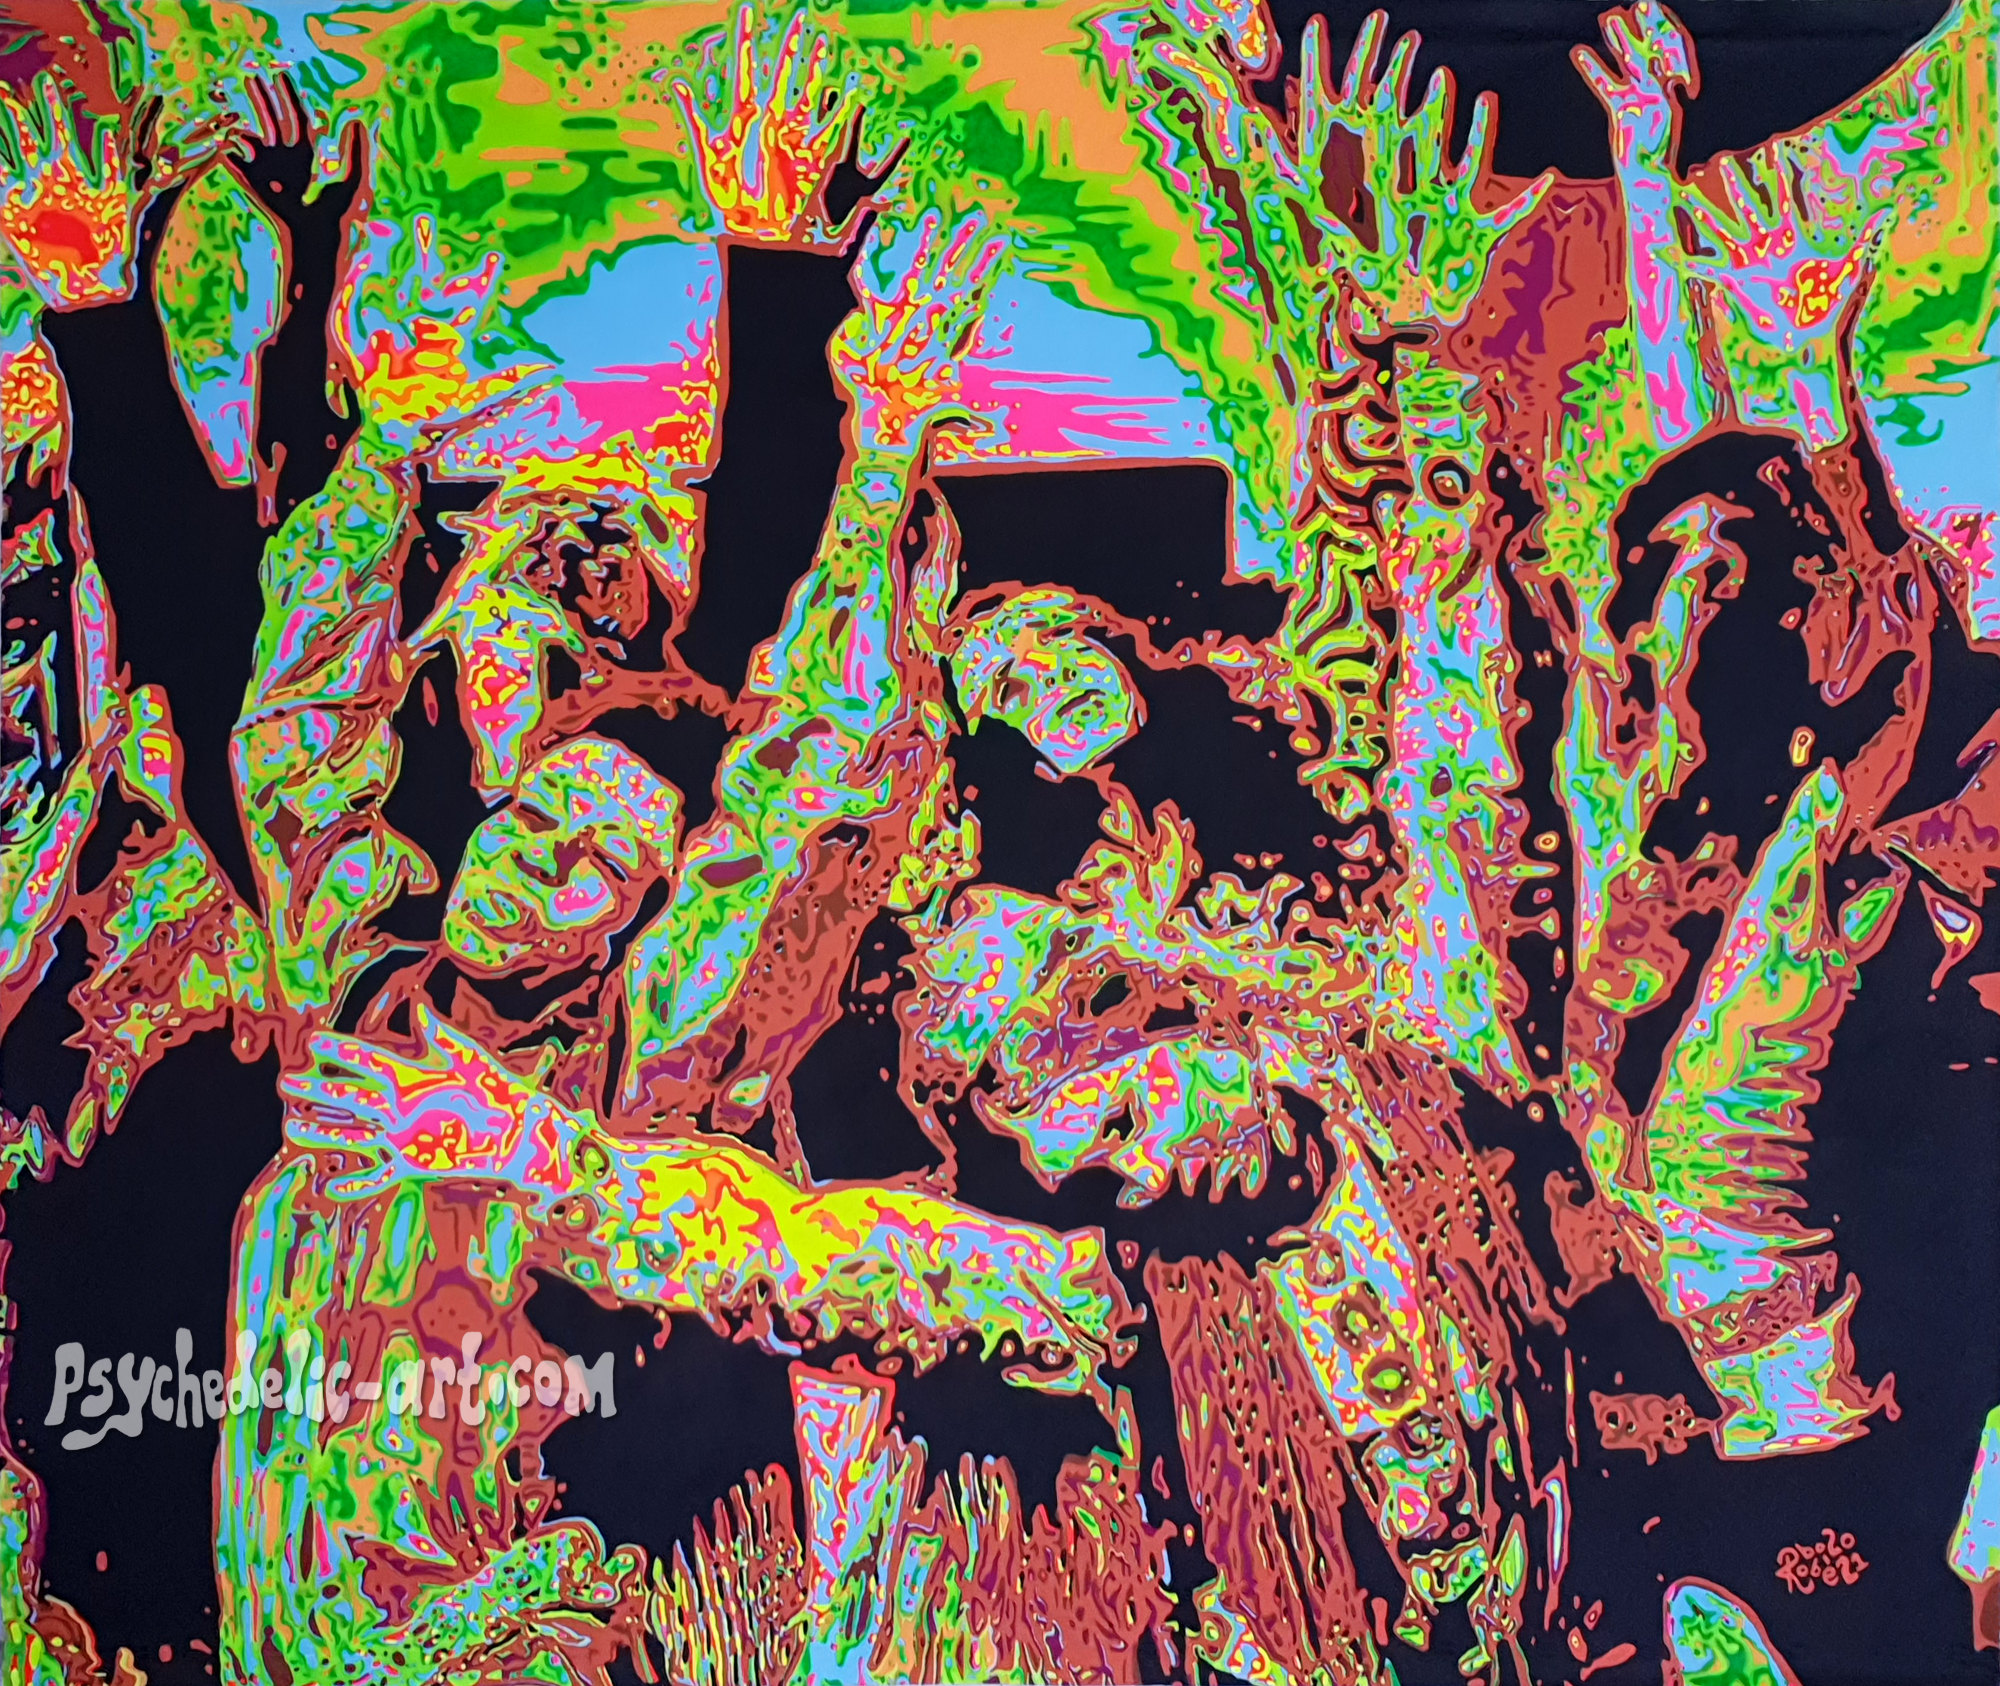 UV painting of dancing people with hands raised